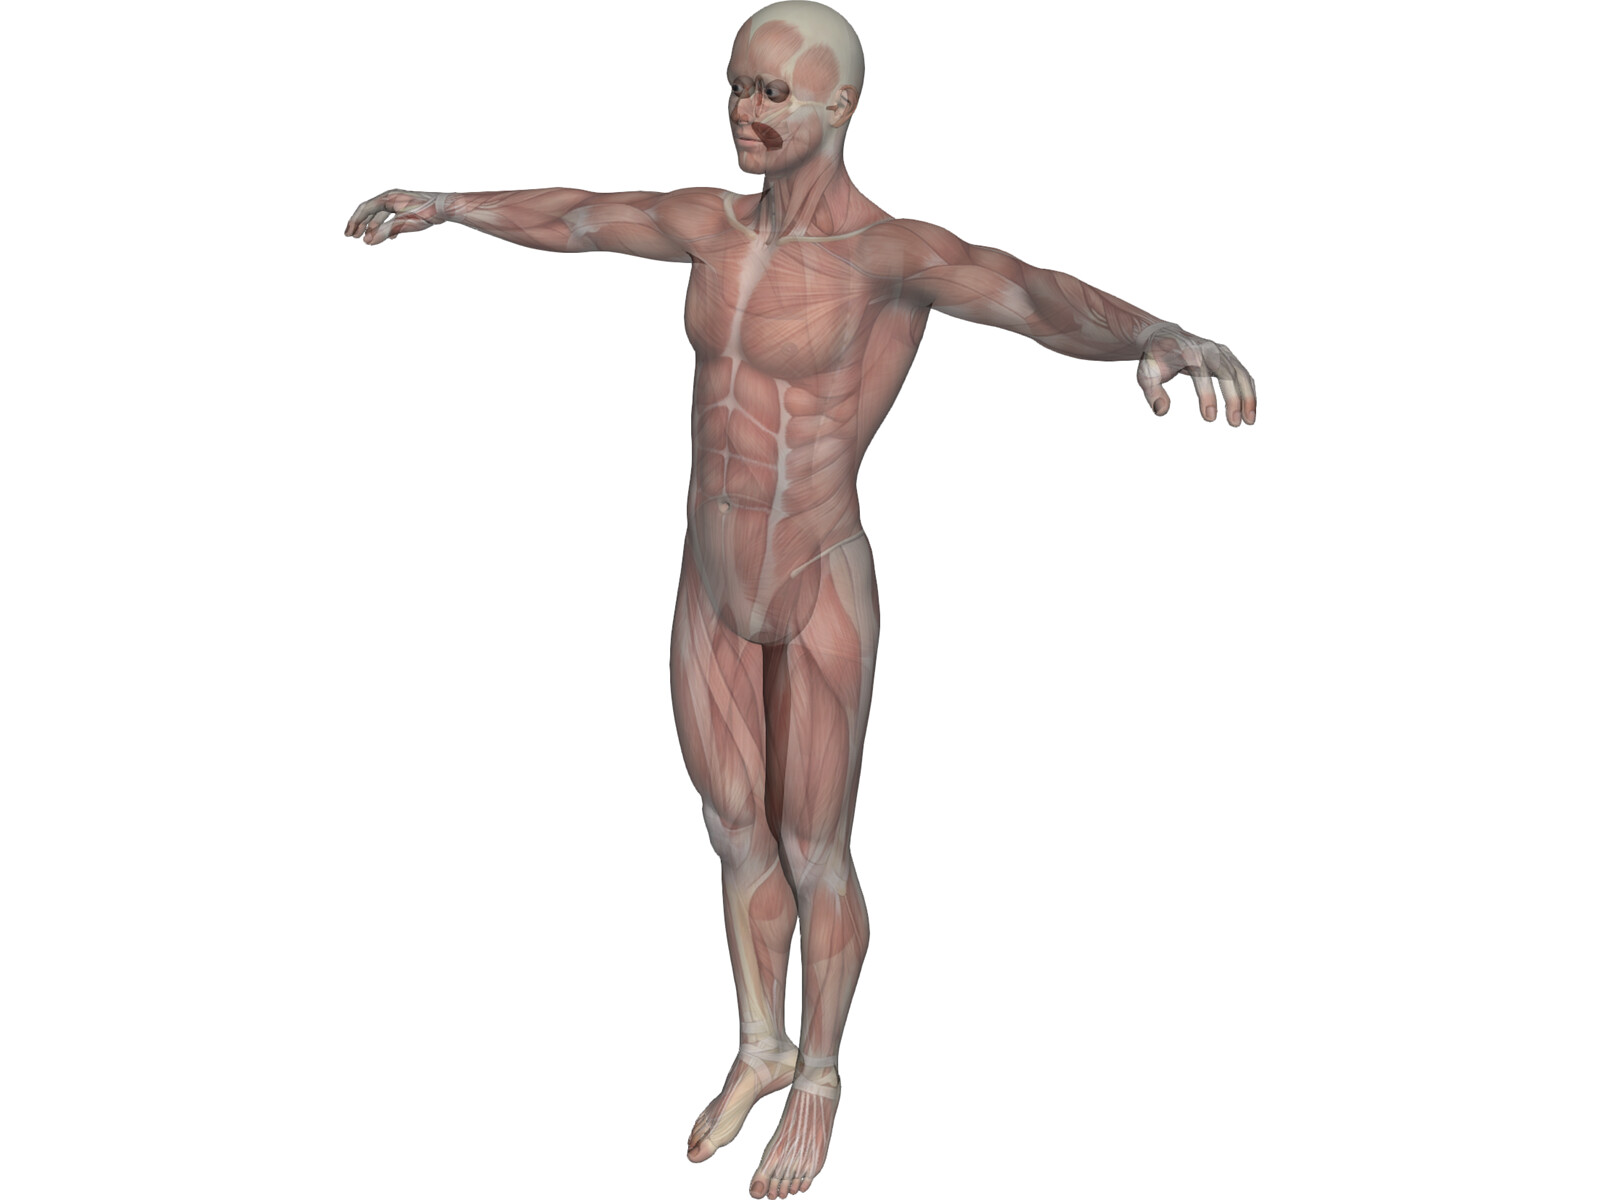 human body with muscles 3d model download - 3d cad browser, Muscles